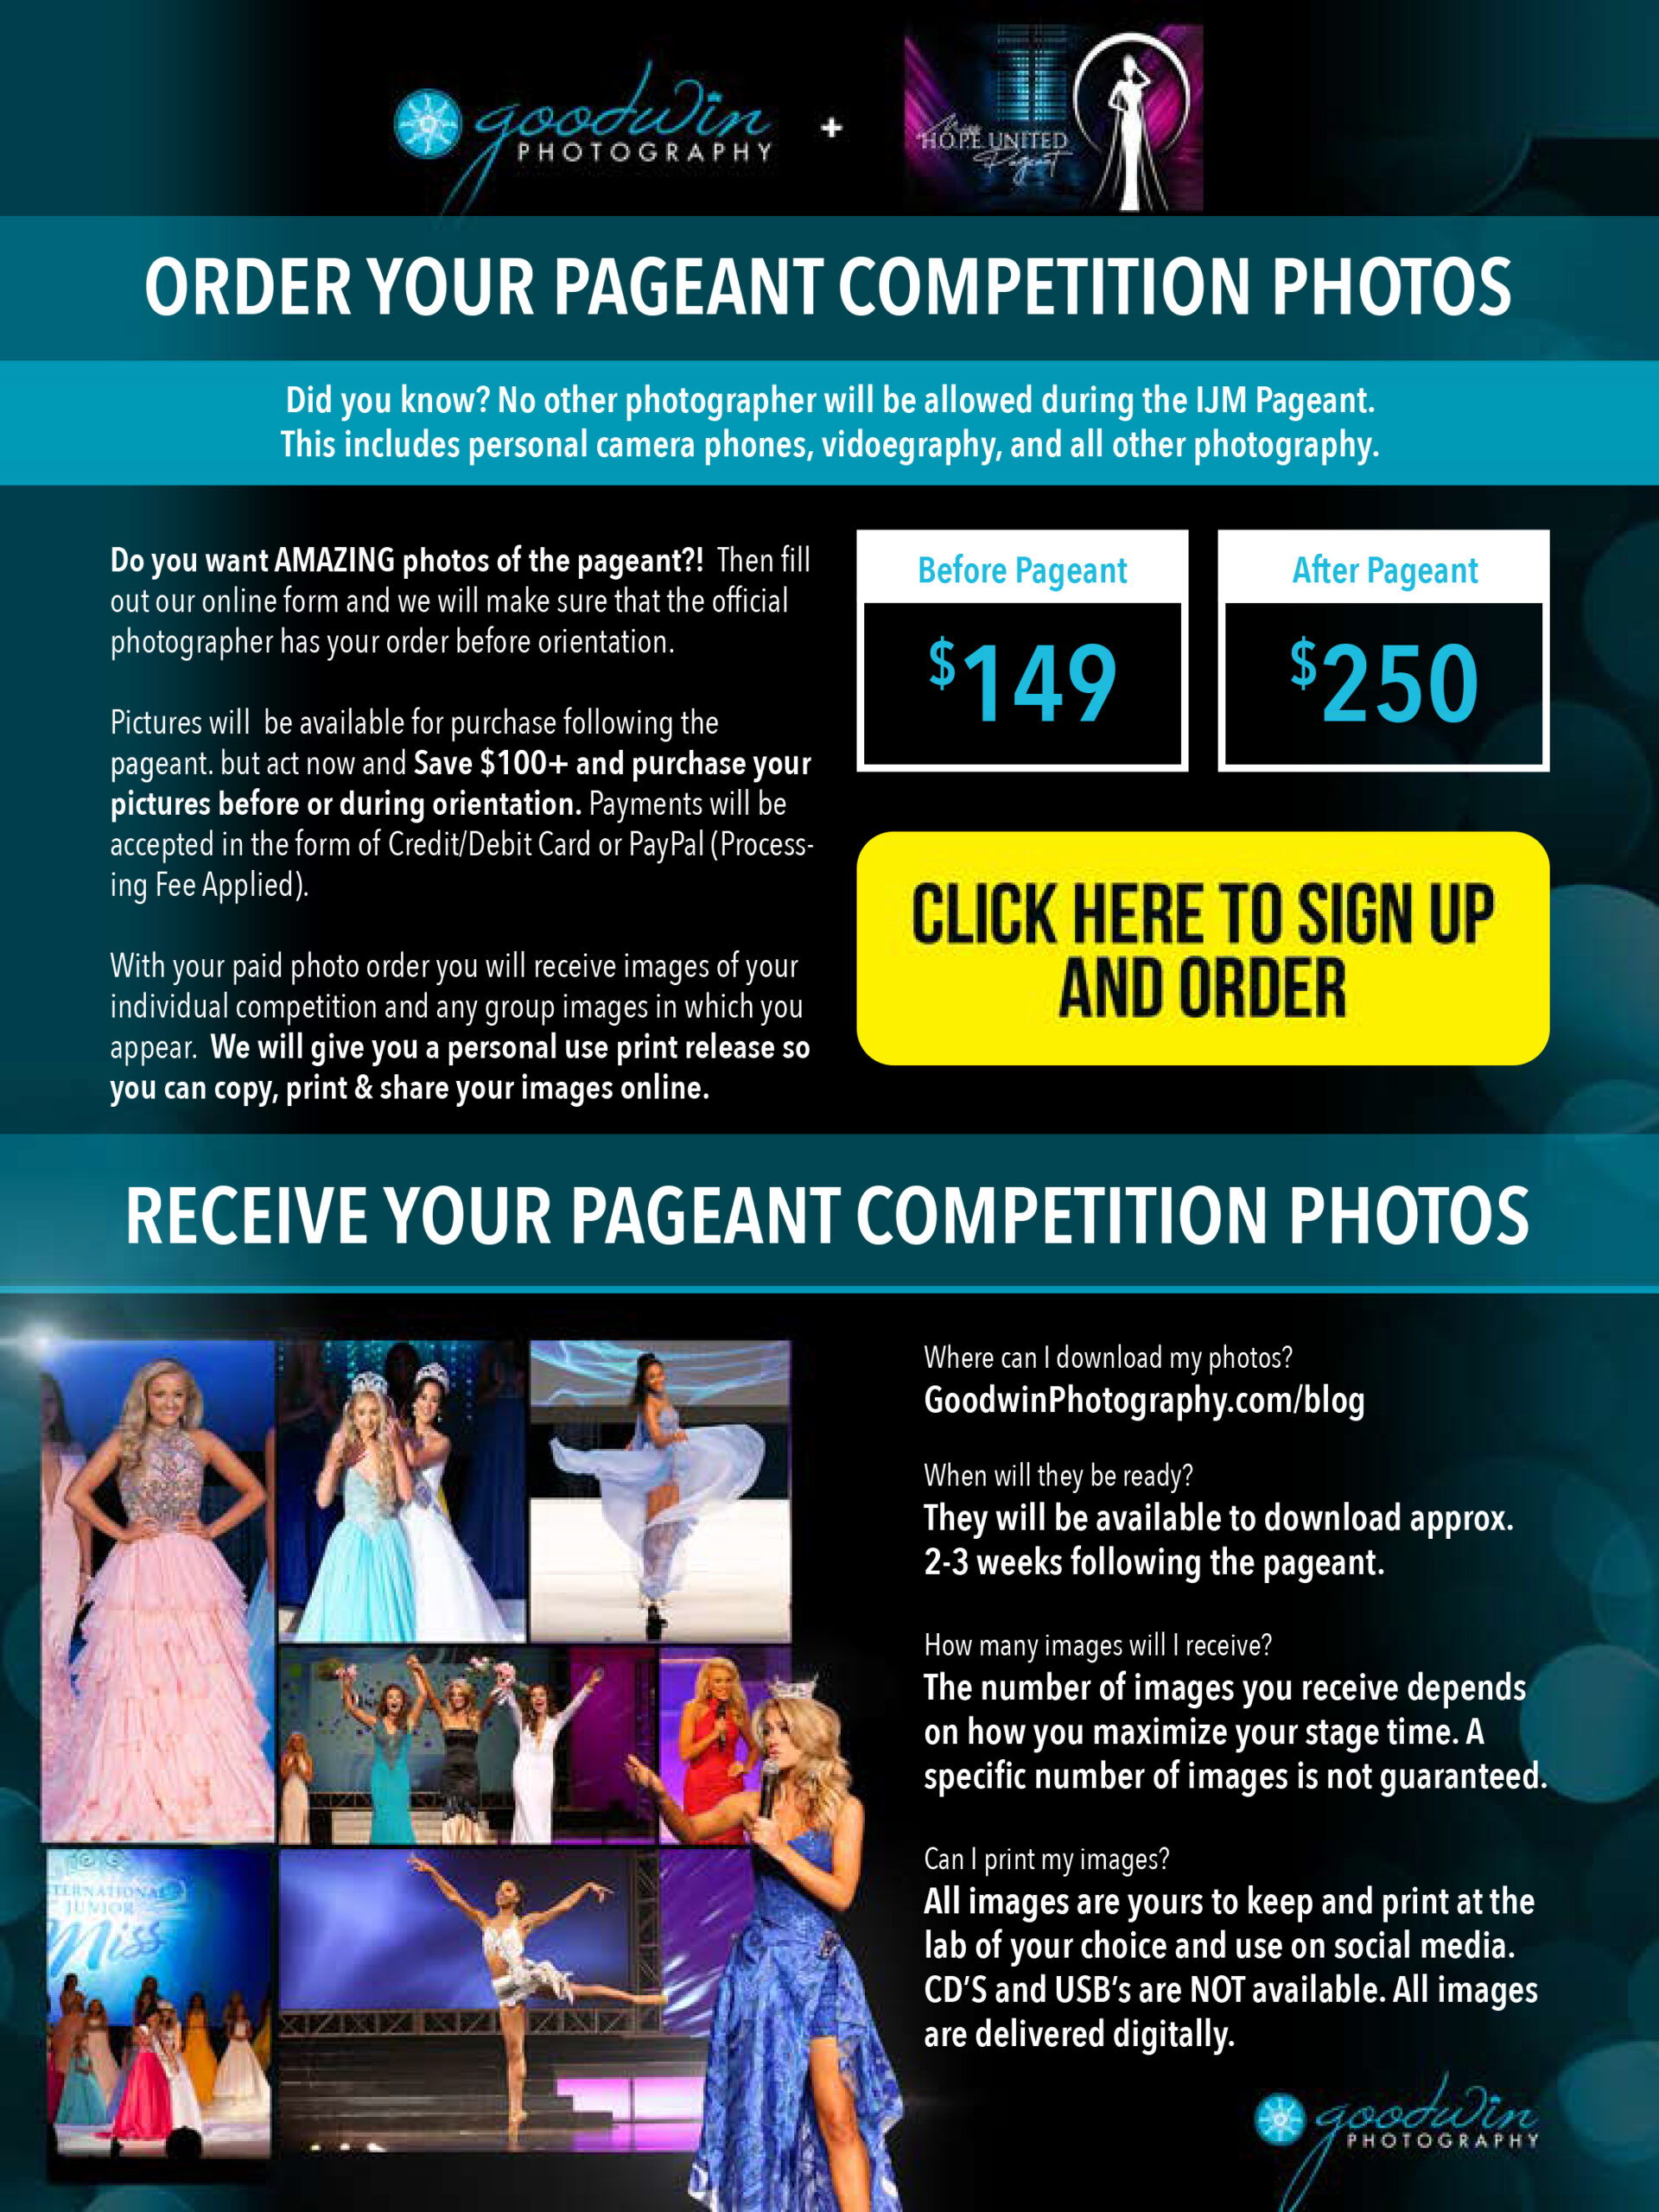 CompetitionPhotos-MissHopeUnited